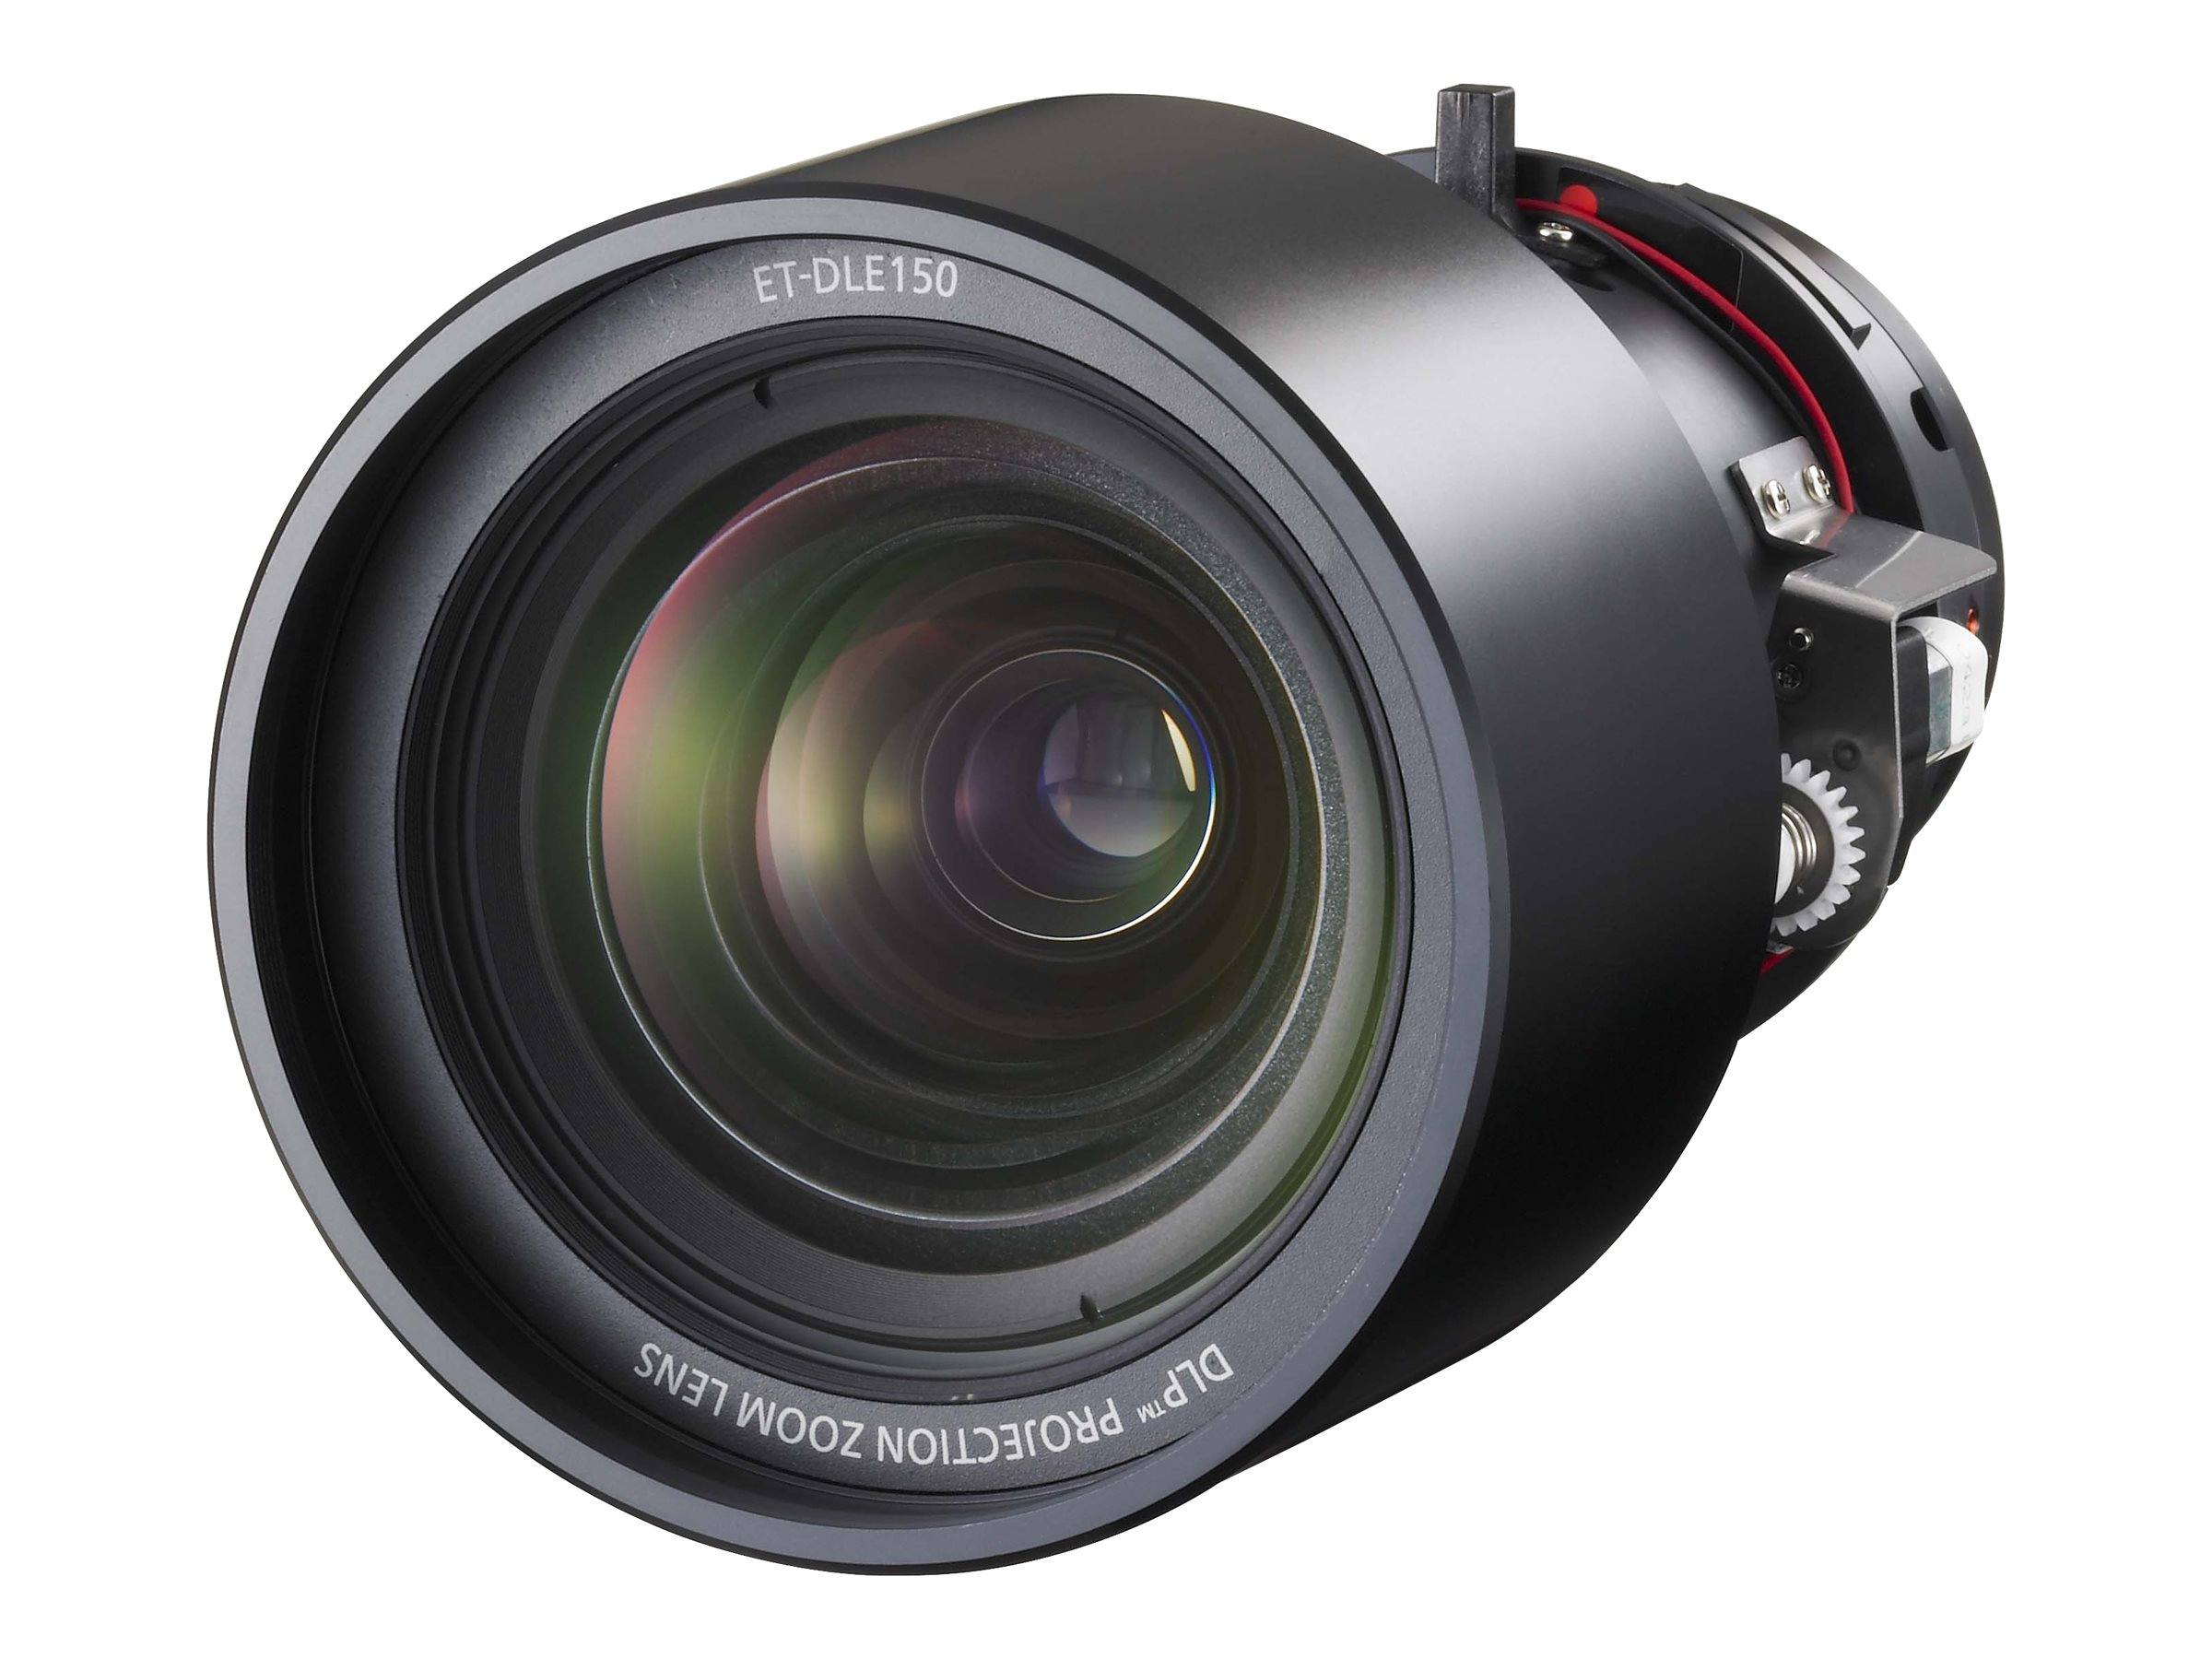 Panasonic Power Zoom Lens 1.3-2.0:1 for PT-DW5100U, DW5100UL, D5700U, D5700UL, ET-DLE150